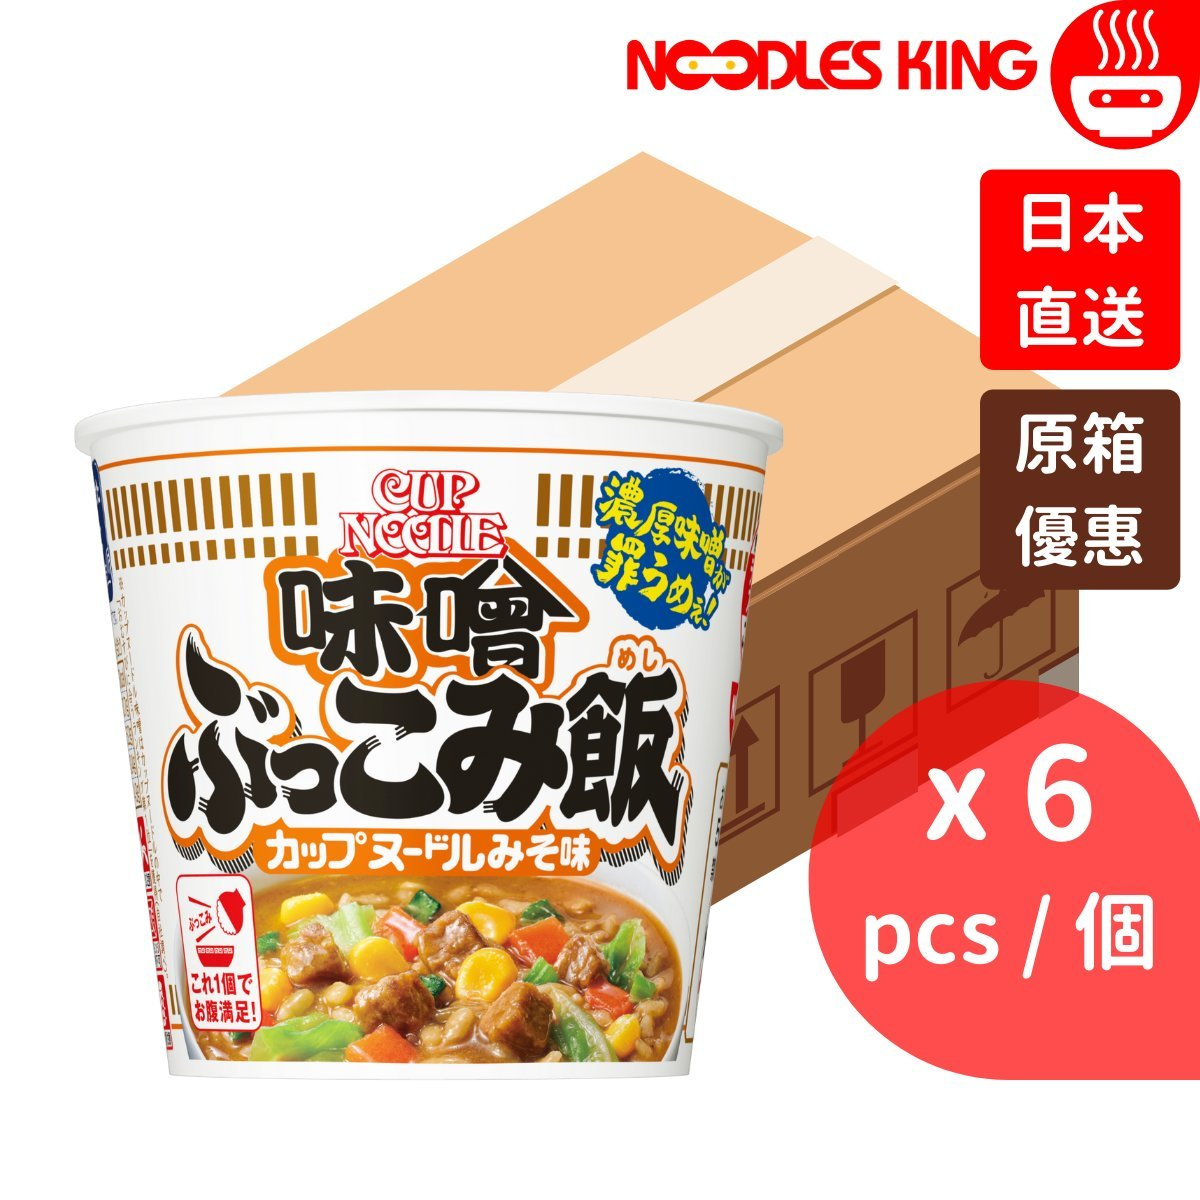 [Full Case] Cup Rice - Cup Noodles Miso Flavour (Japan) 95g x 6